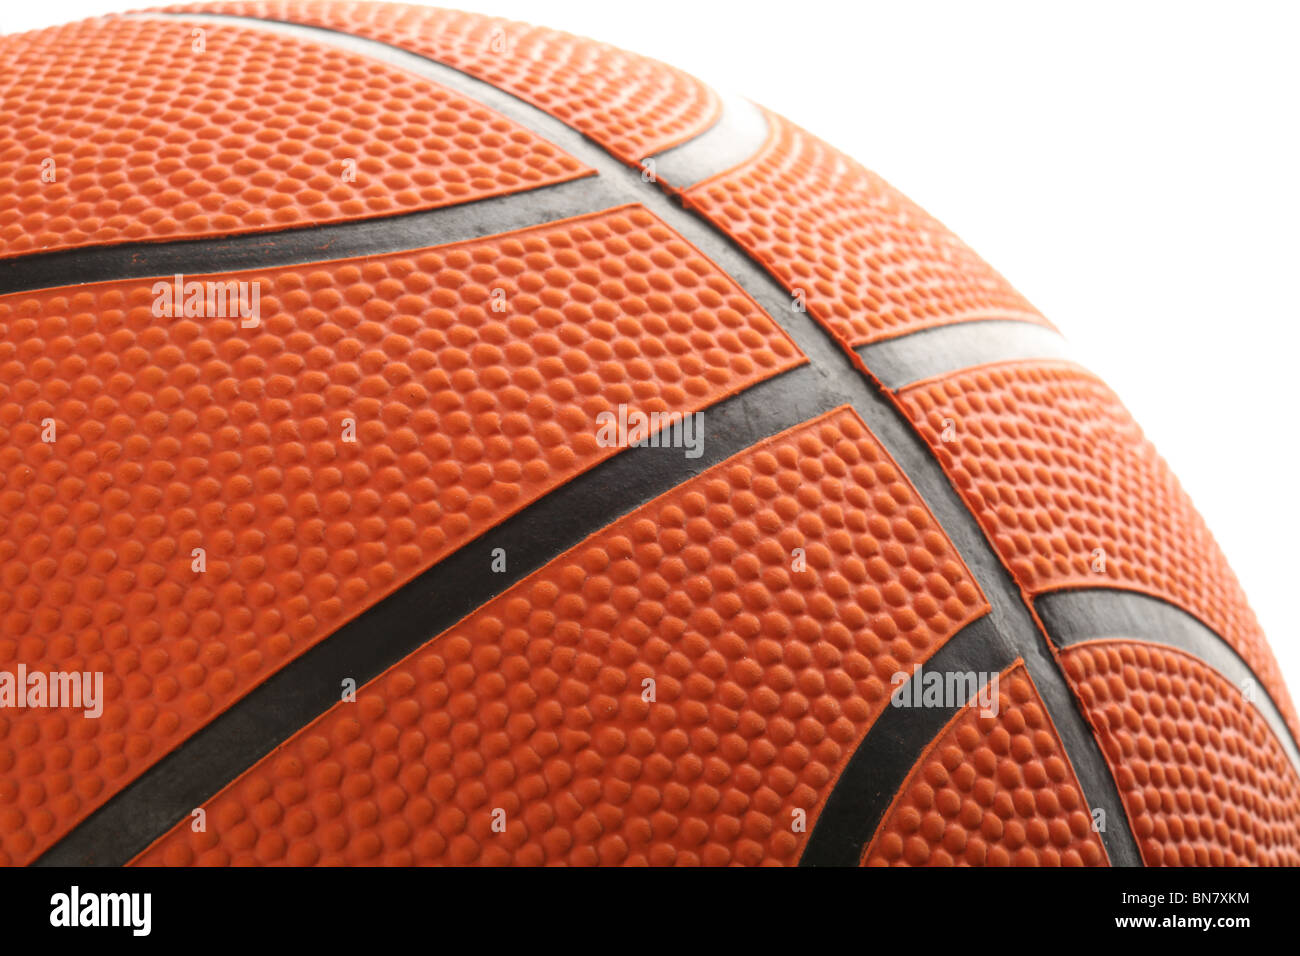 Orange Basketball Nahaufnahme Schuss Stockfoto